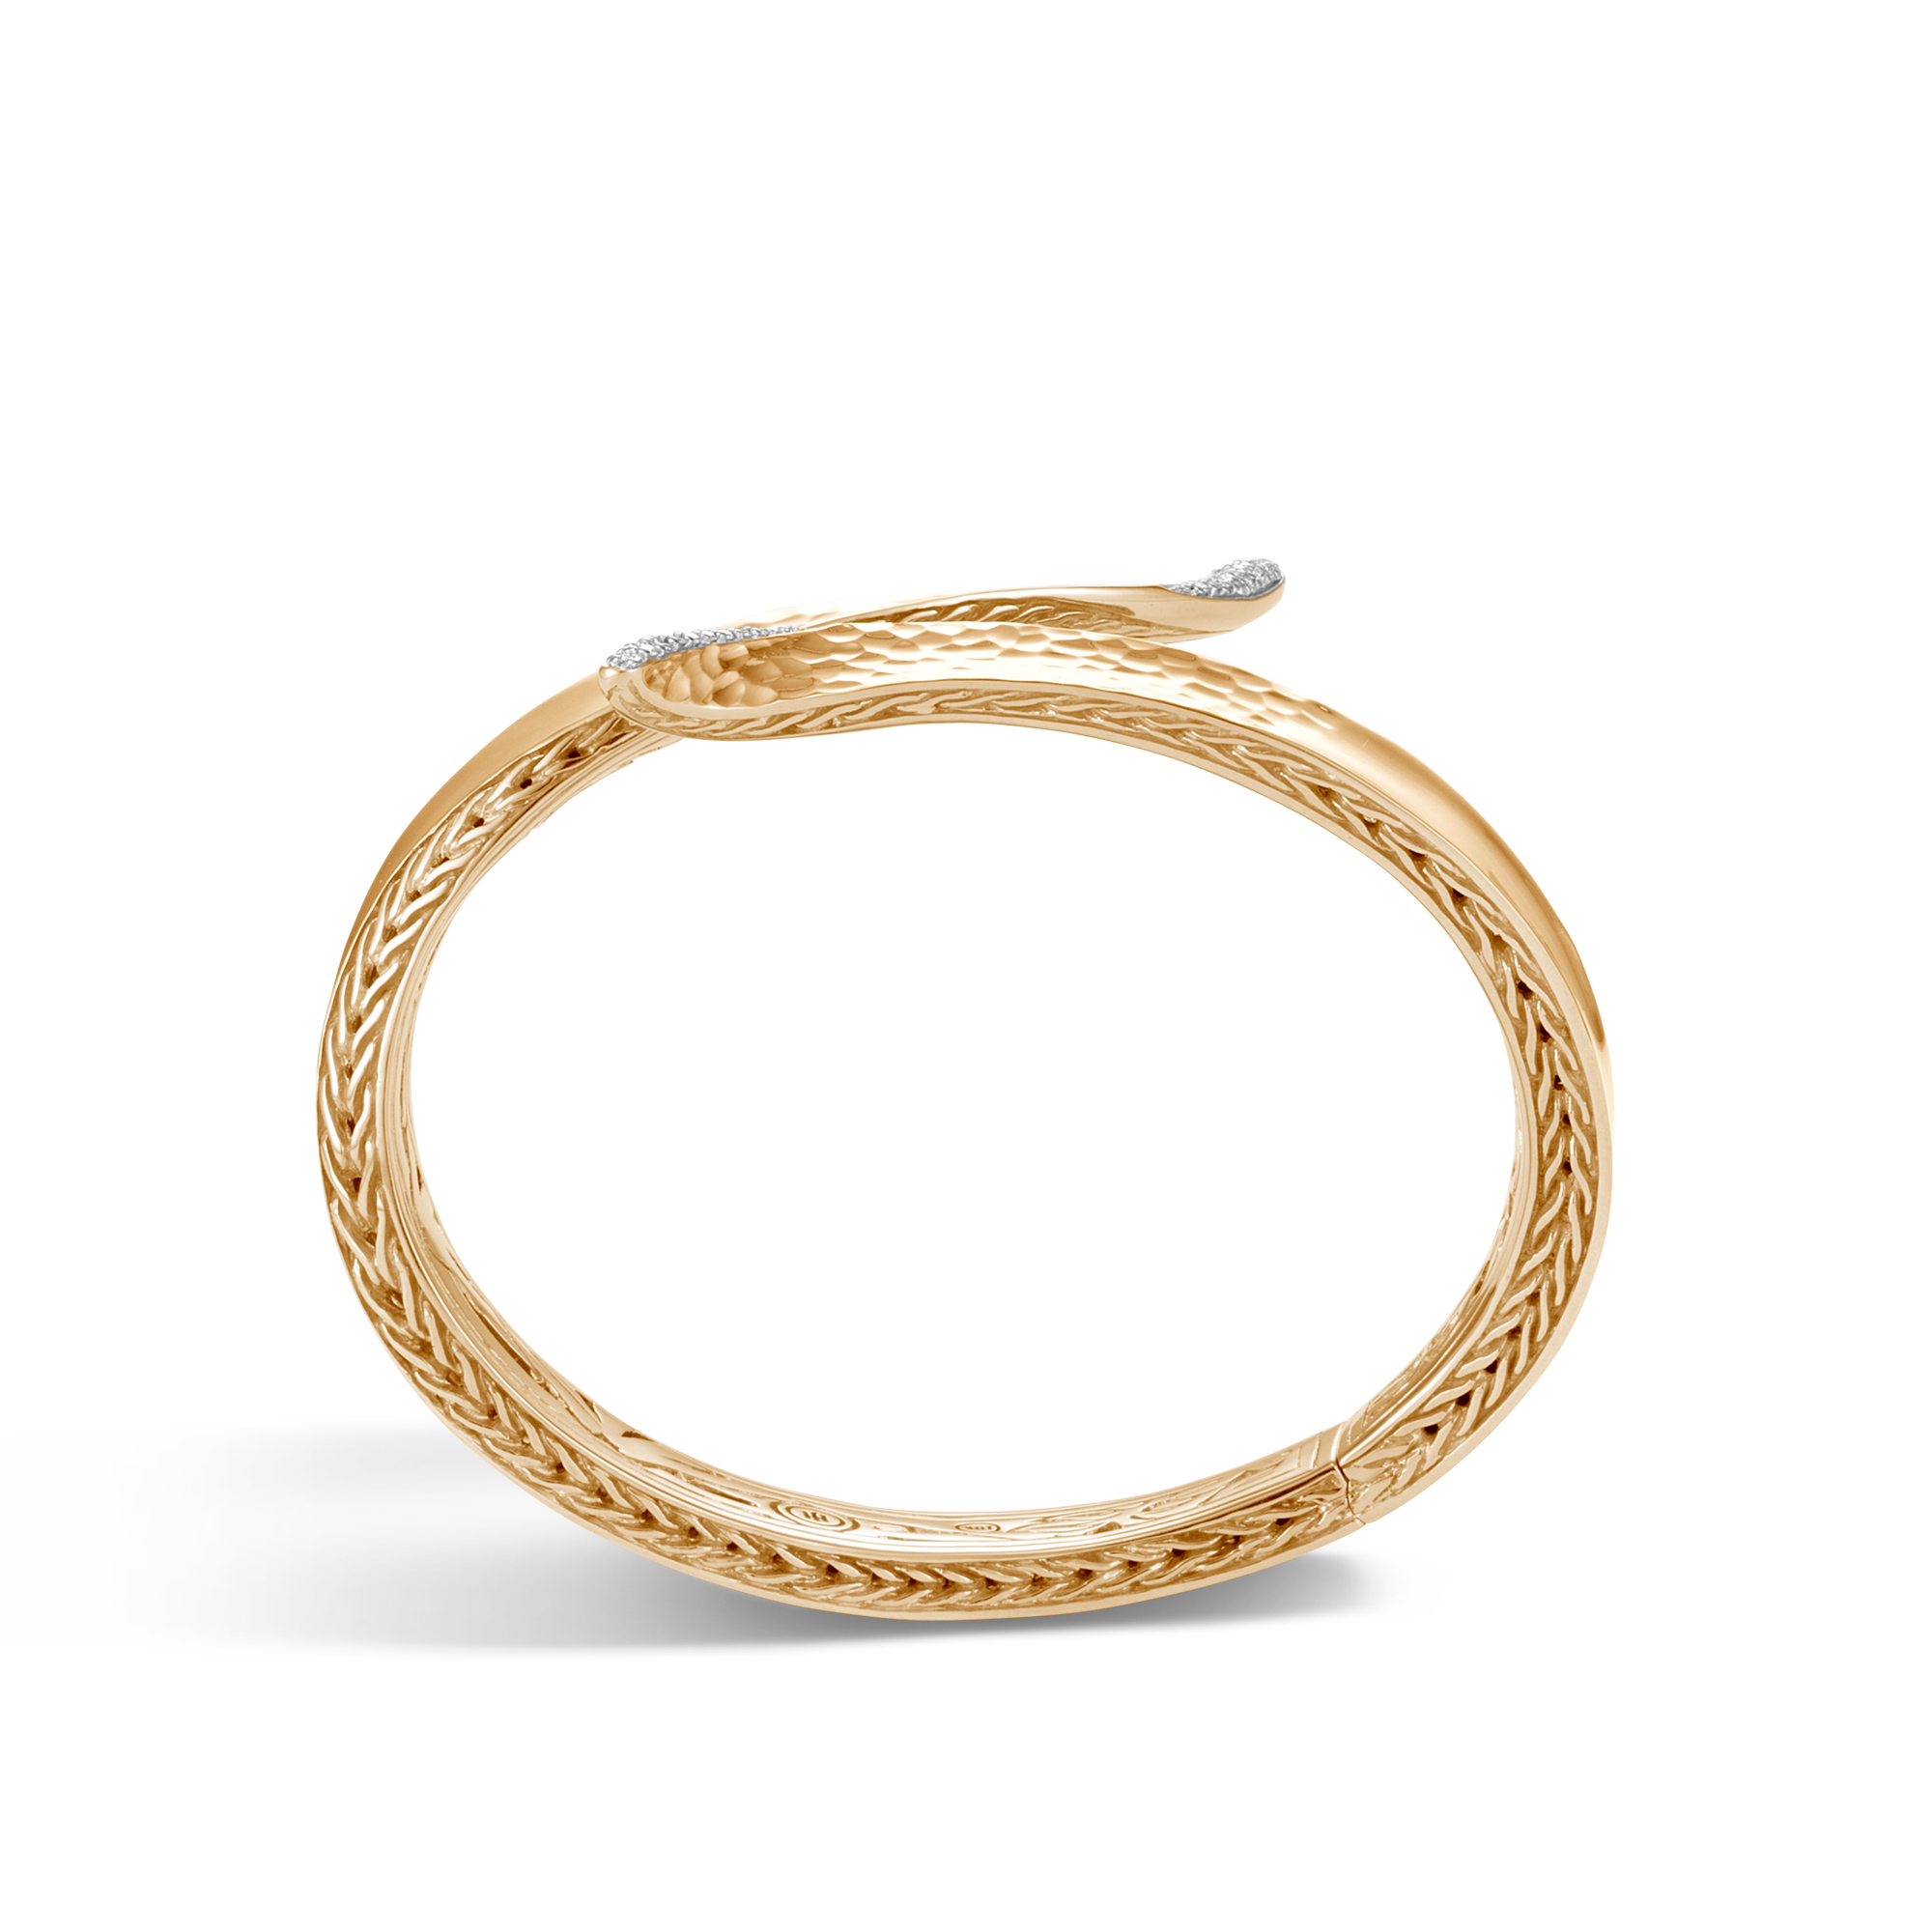 Classic Chain Wave Hinged Bangle in Hammered 18K Gold, Dia, White Diamond, large